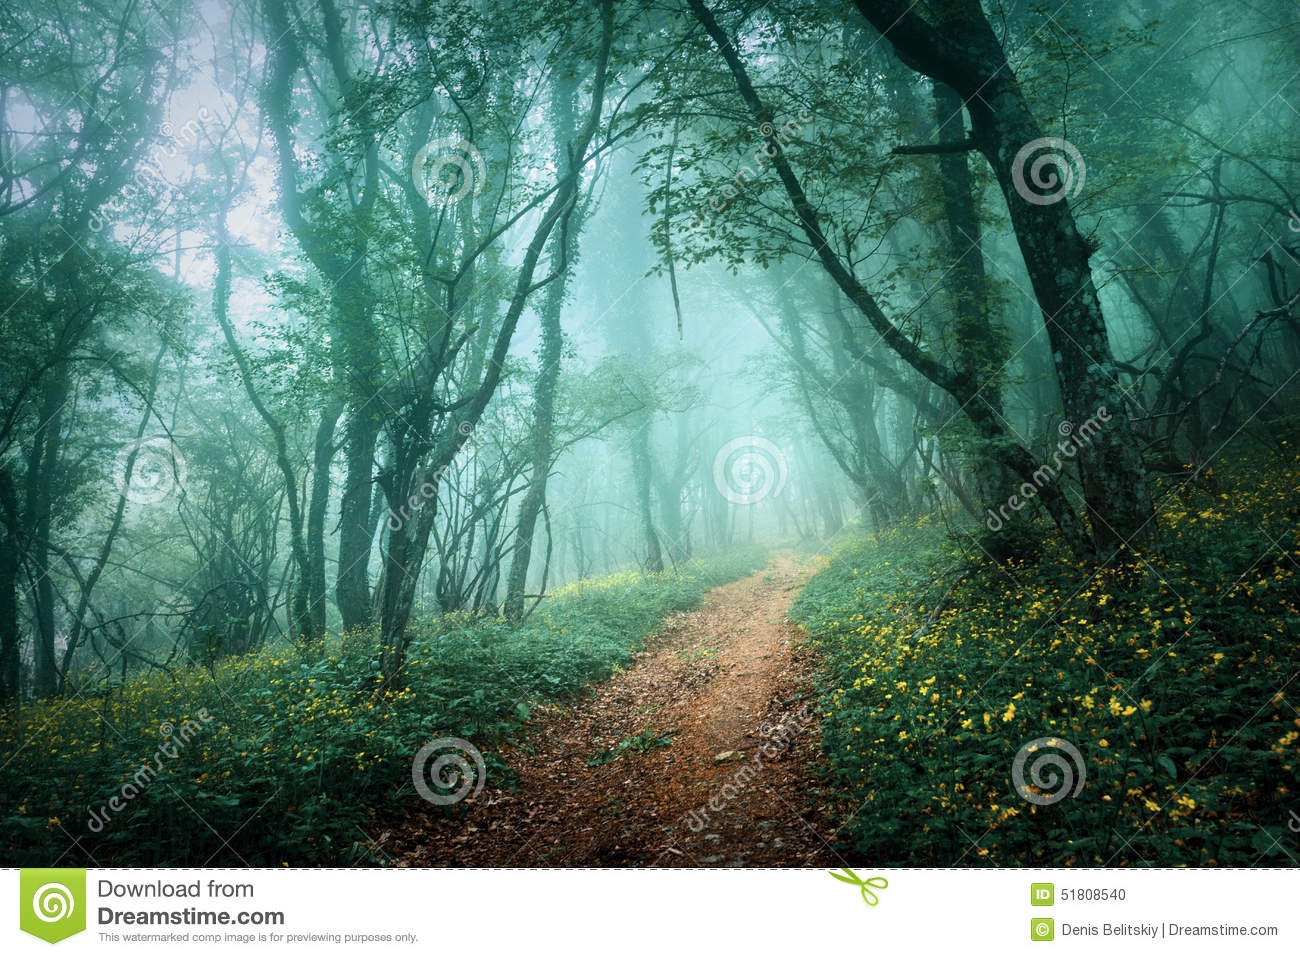 Spooky Fall Wallpaper Mysterious Dark Forest In Fog With Flowers And Road Stock